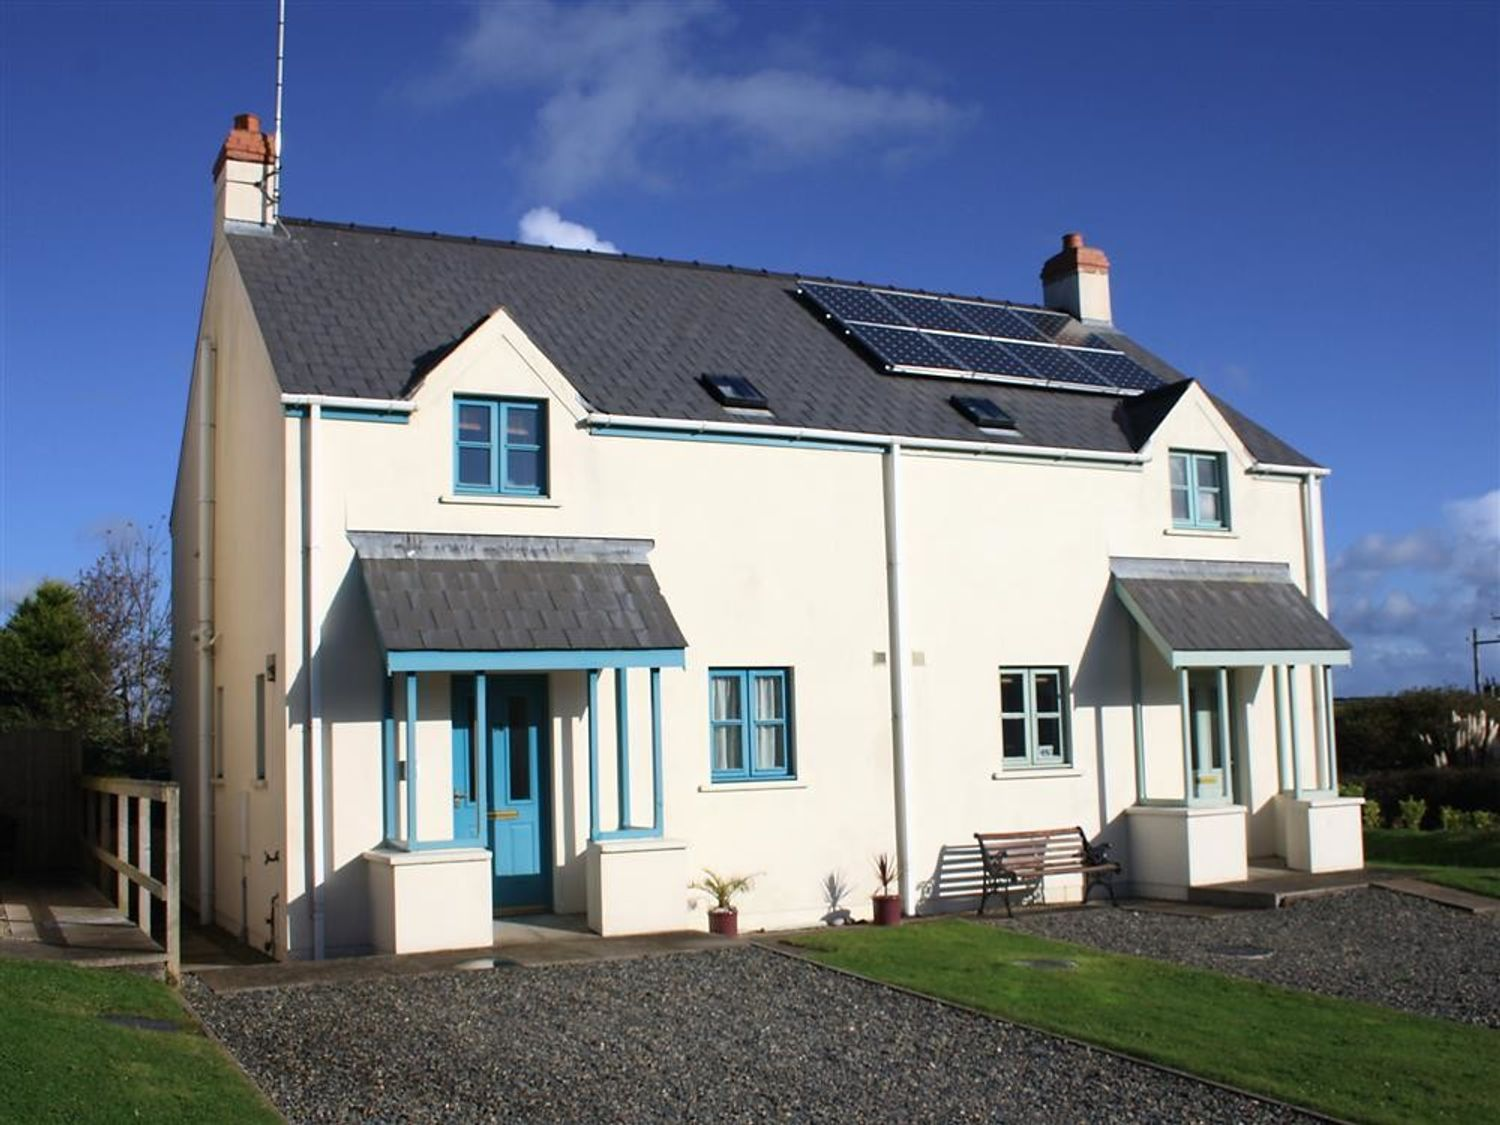 14 Green Meadow Close - South Wales - 1035573 - photo 1